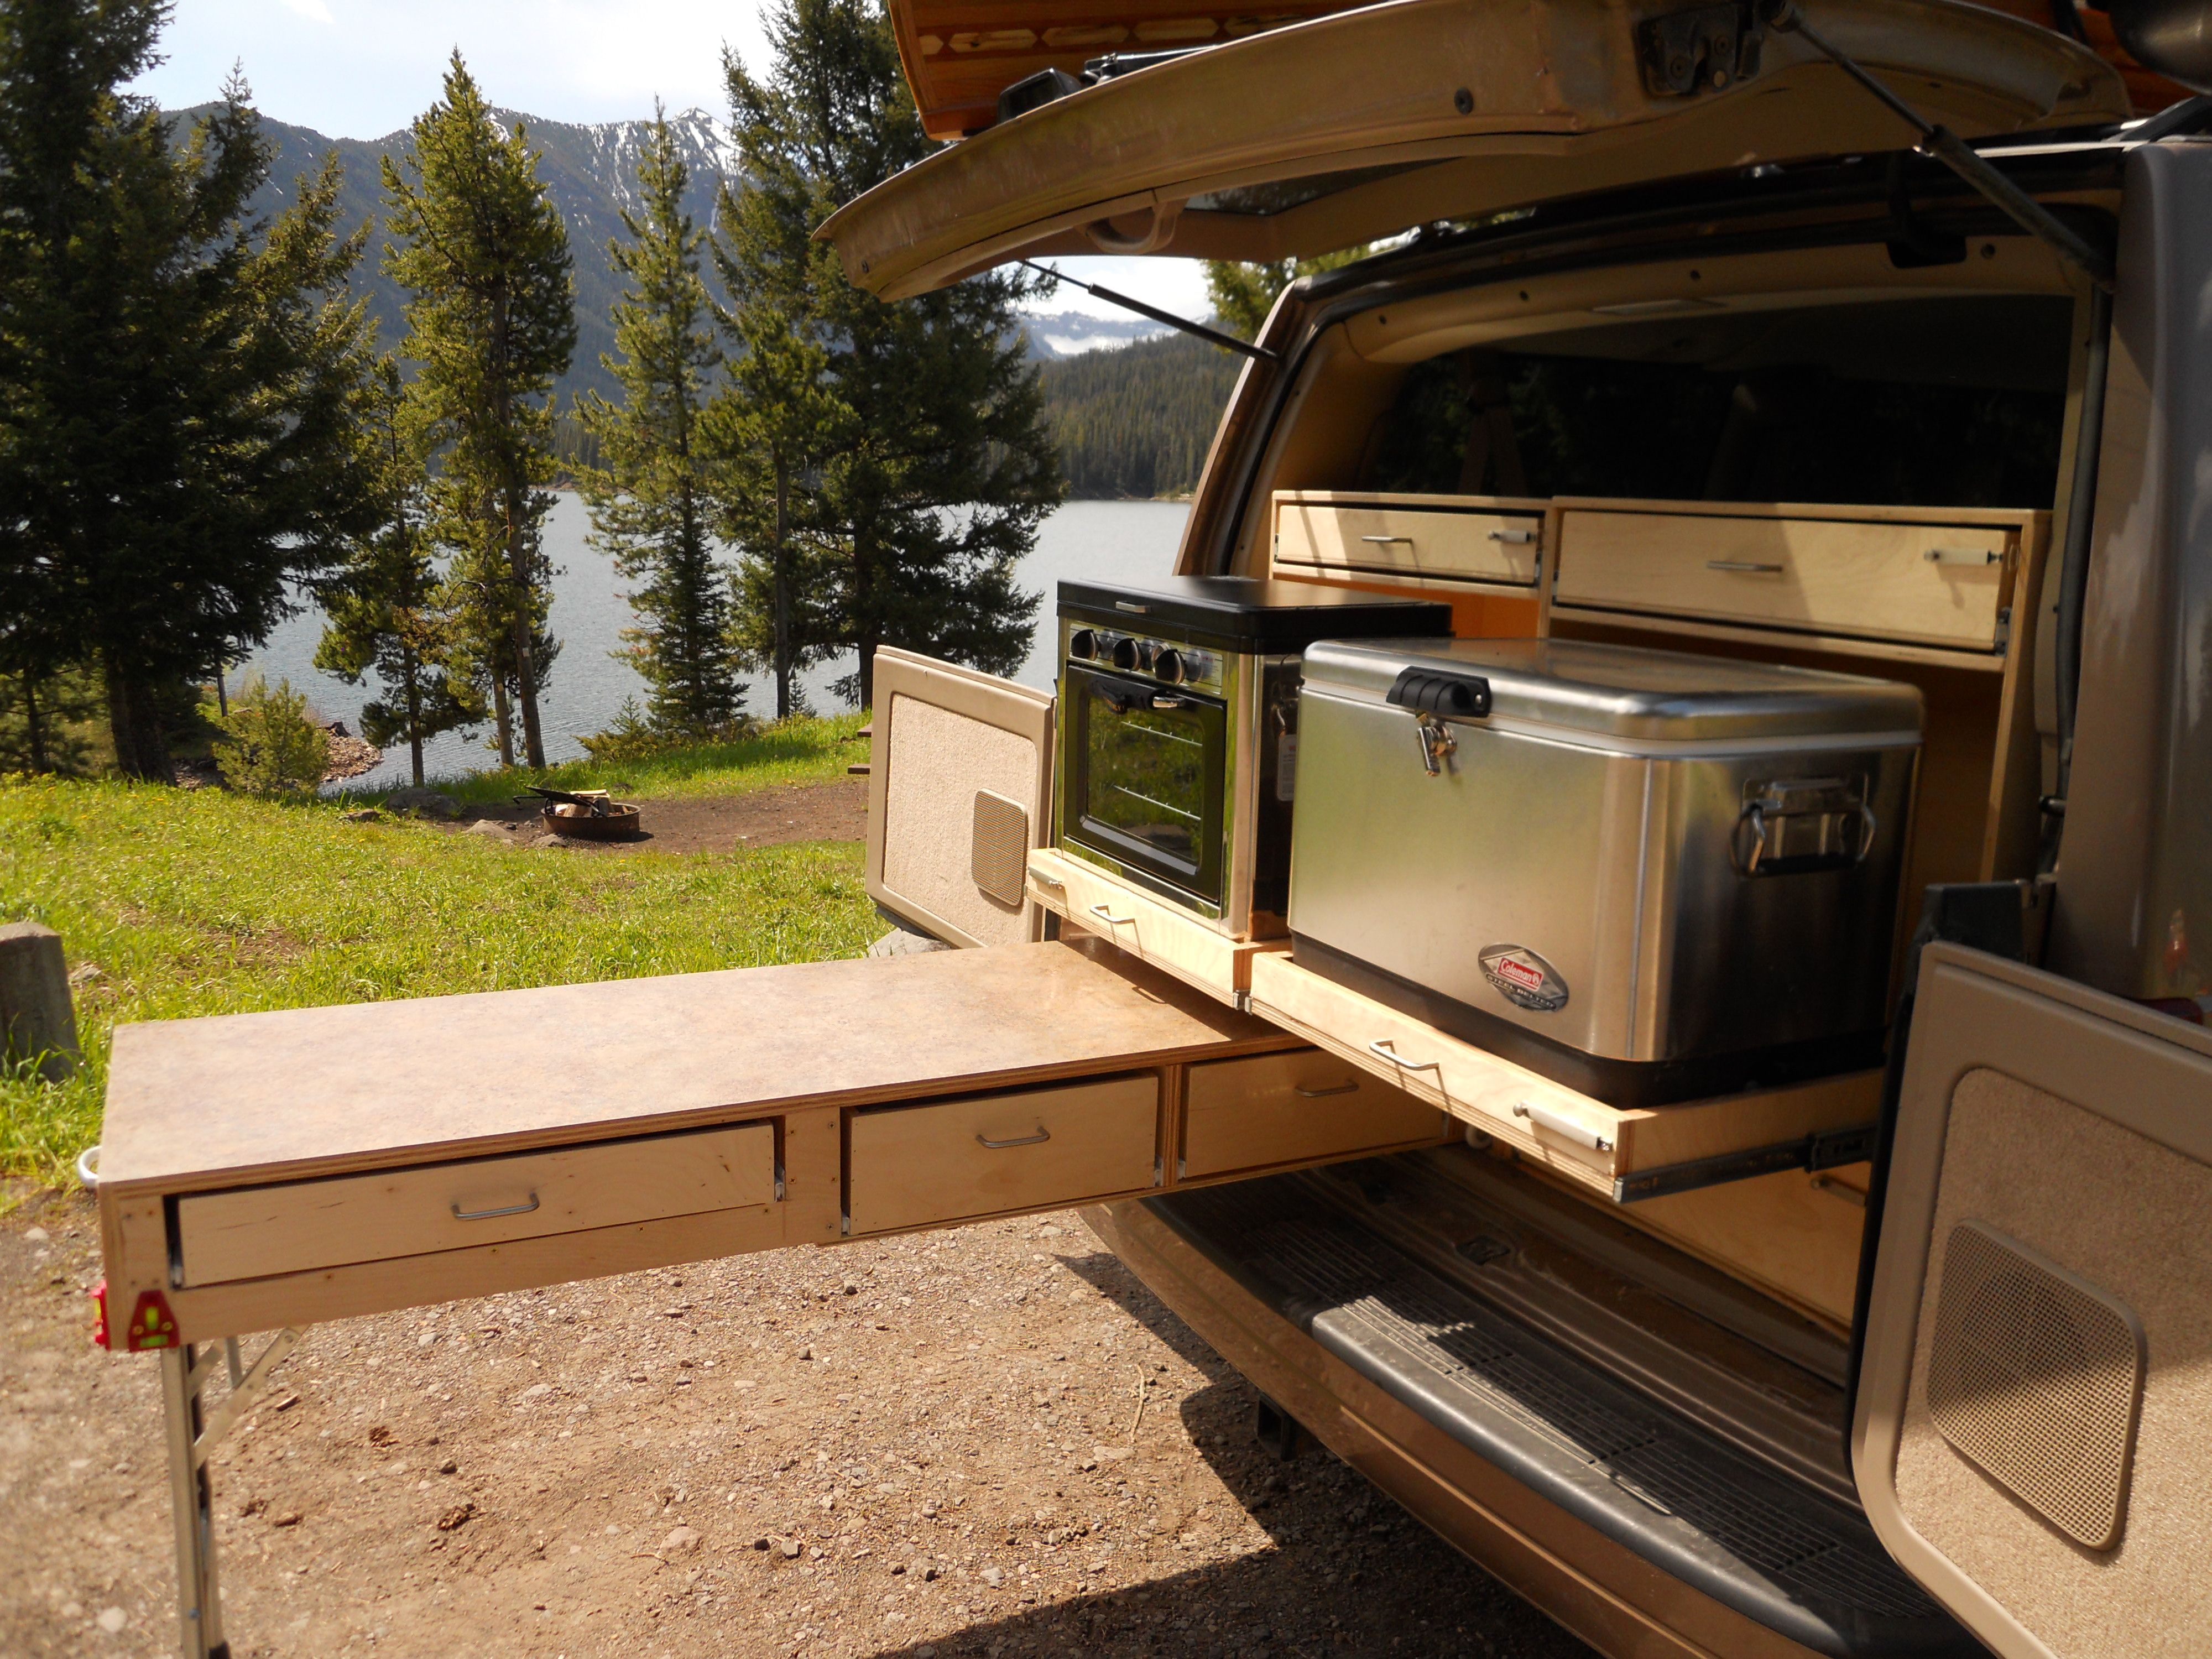 Camping In The Super Sweet Van No Plans But Would Be Easy To Design Something Similar Tiny House Camper Camper Conversion Campervan Conversions